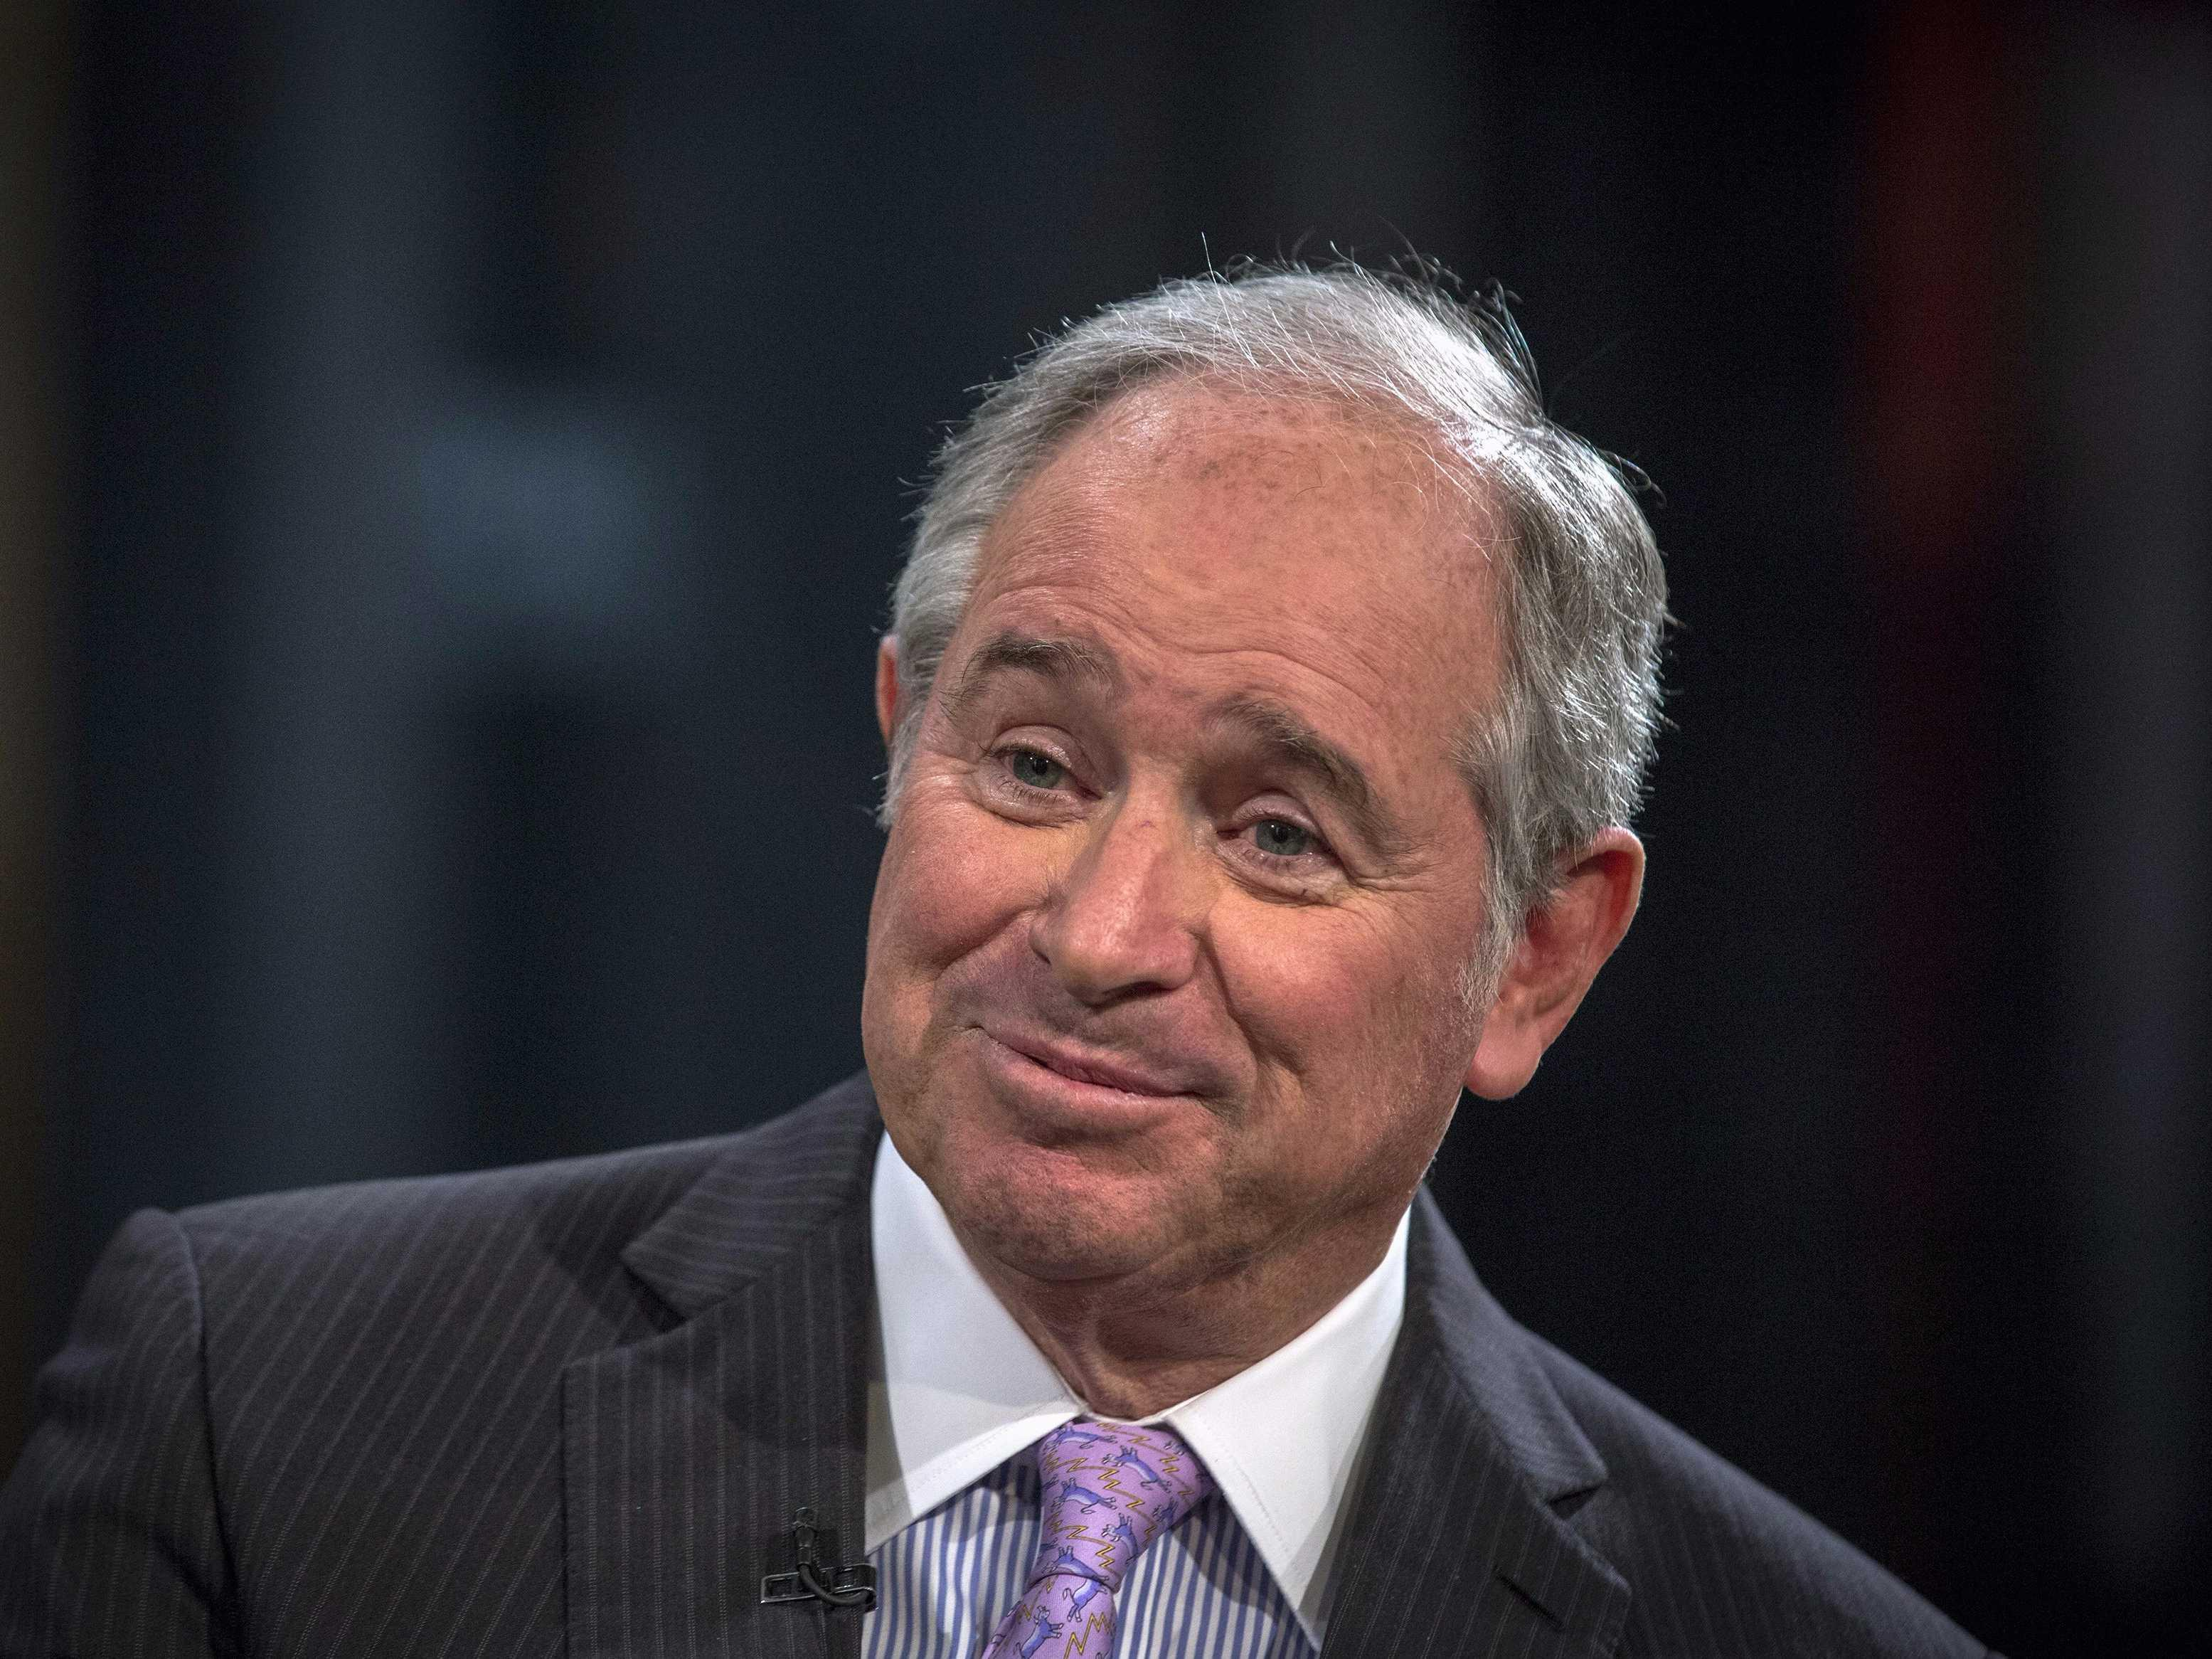 The Wall Street Journal says private equity is dead — here's why that's just nuts